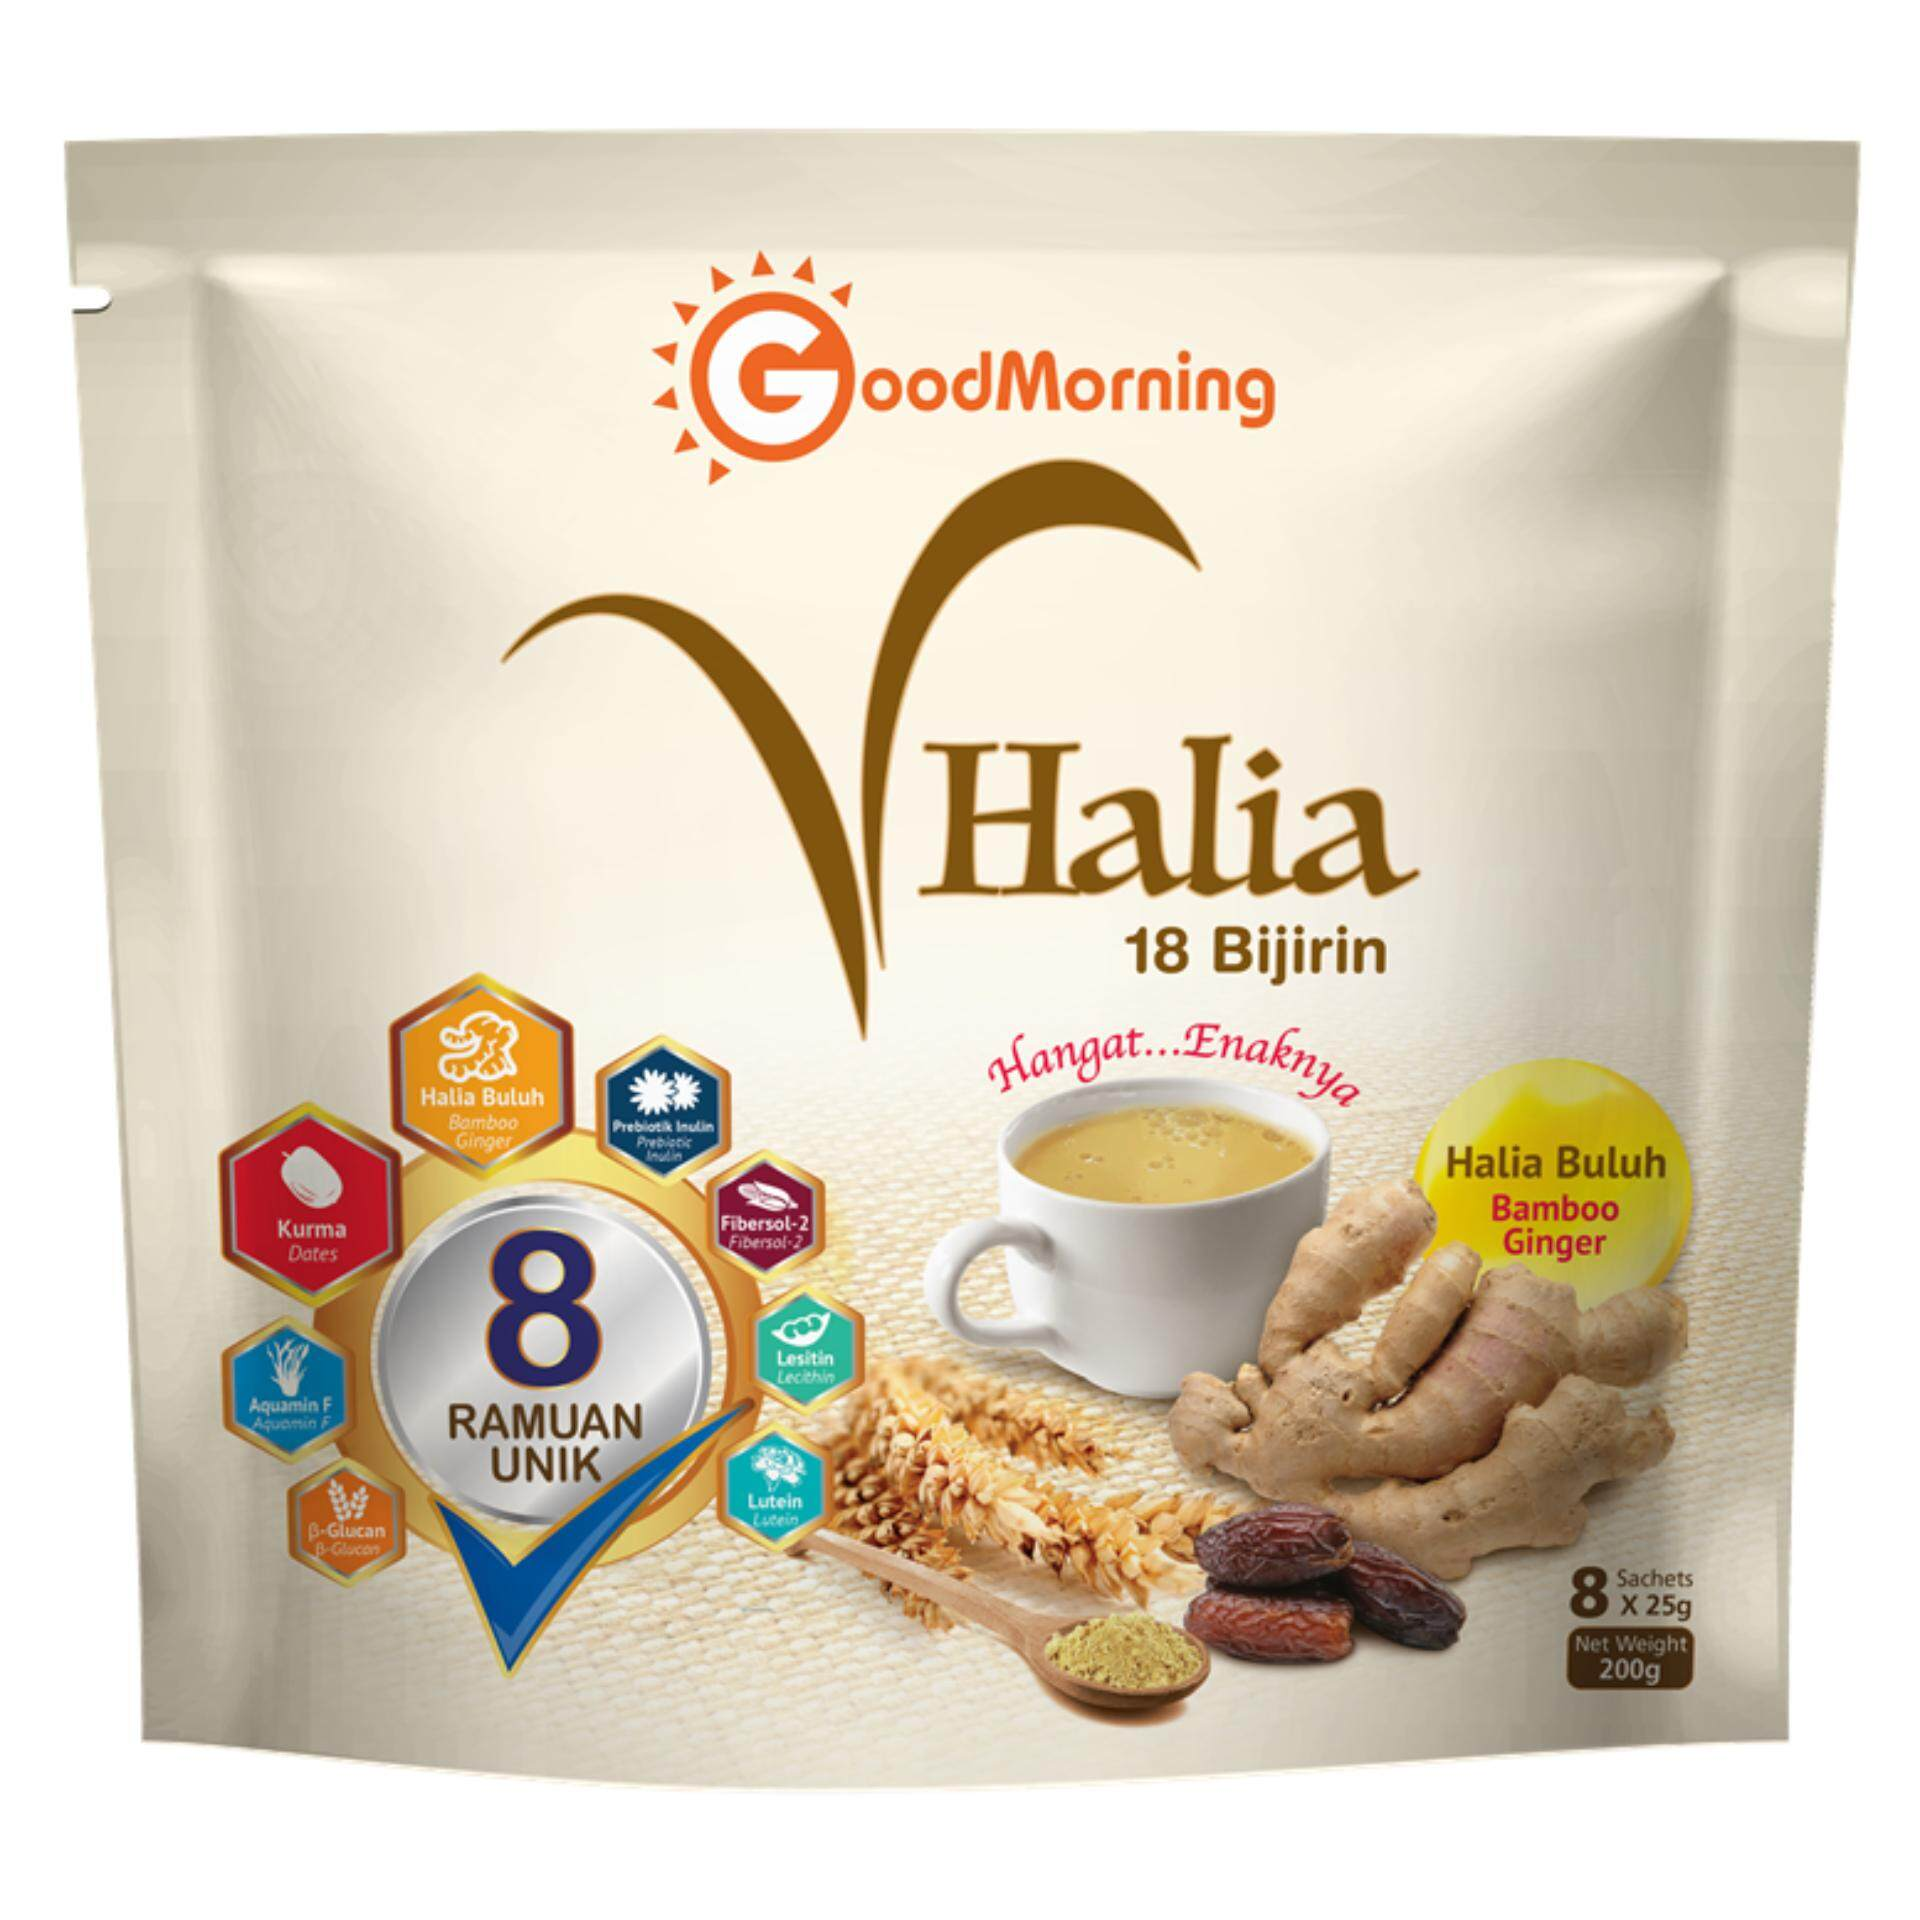 GOODMORNING VHALIA 2 X 25GM (TWIN PACKS)